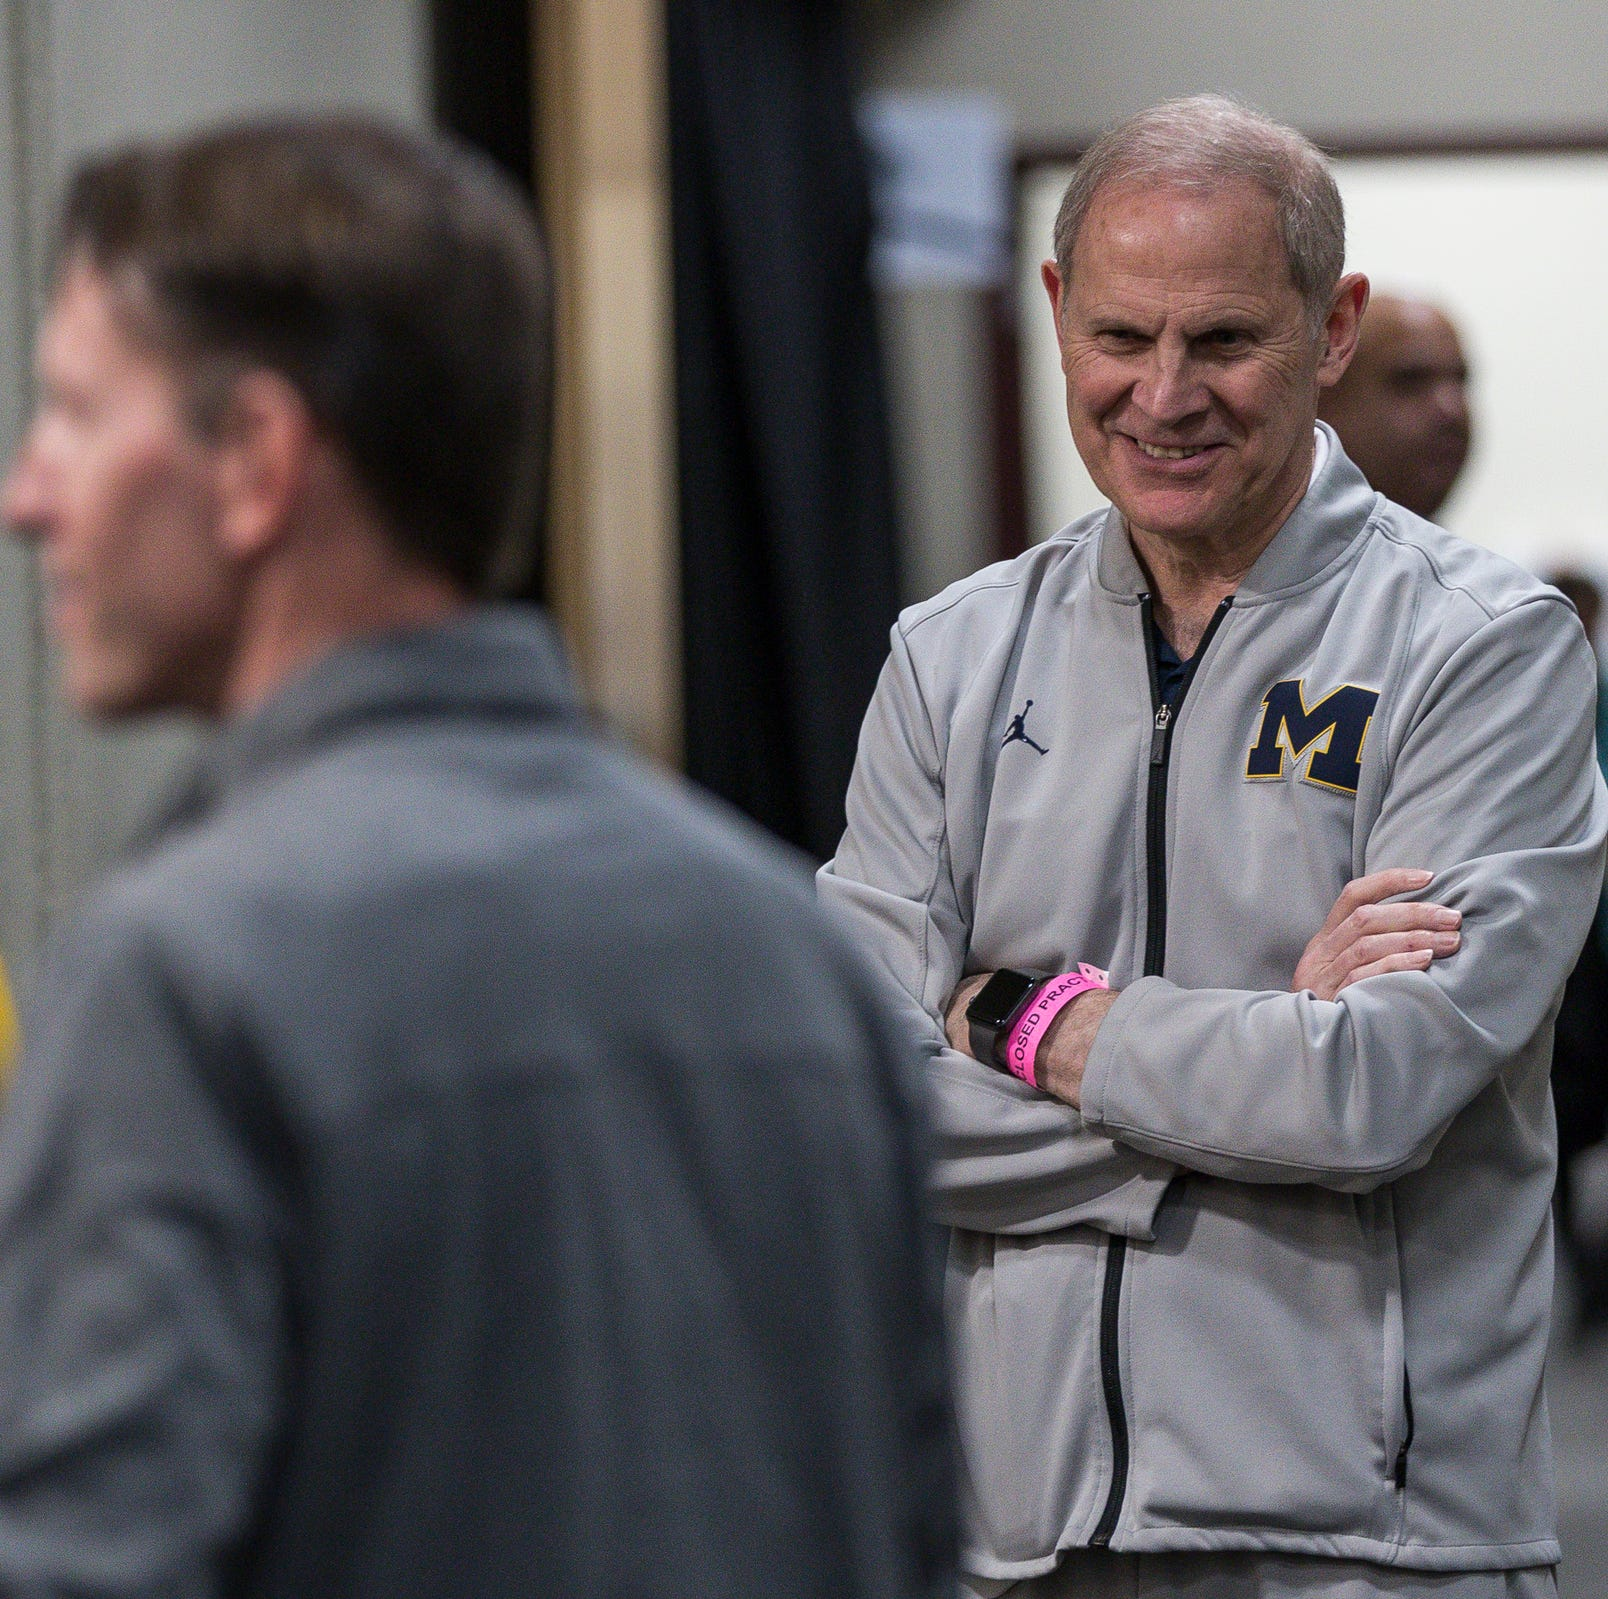 John Beilein evolved into a Michigan legend, but the puzzle never ends